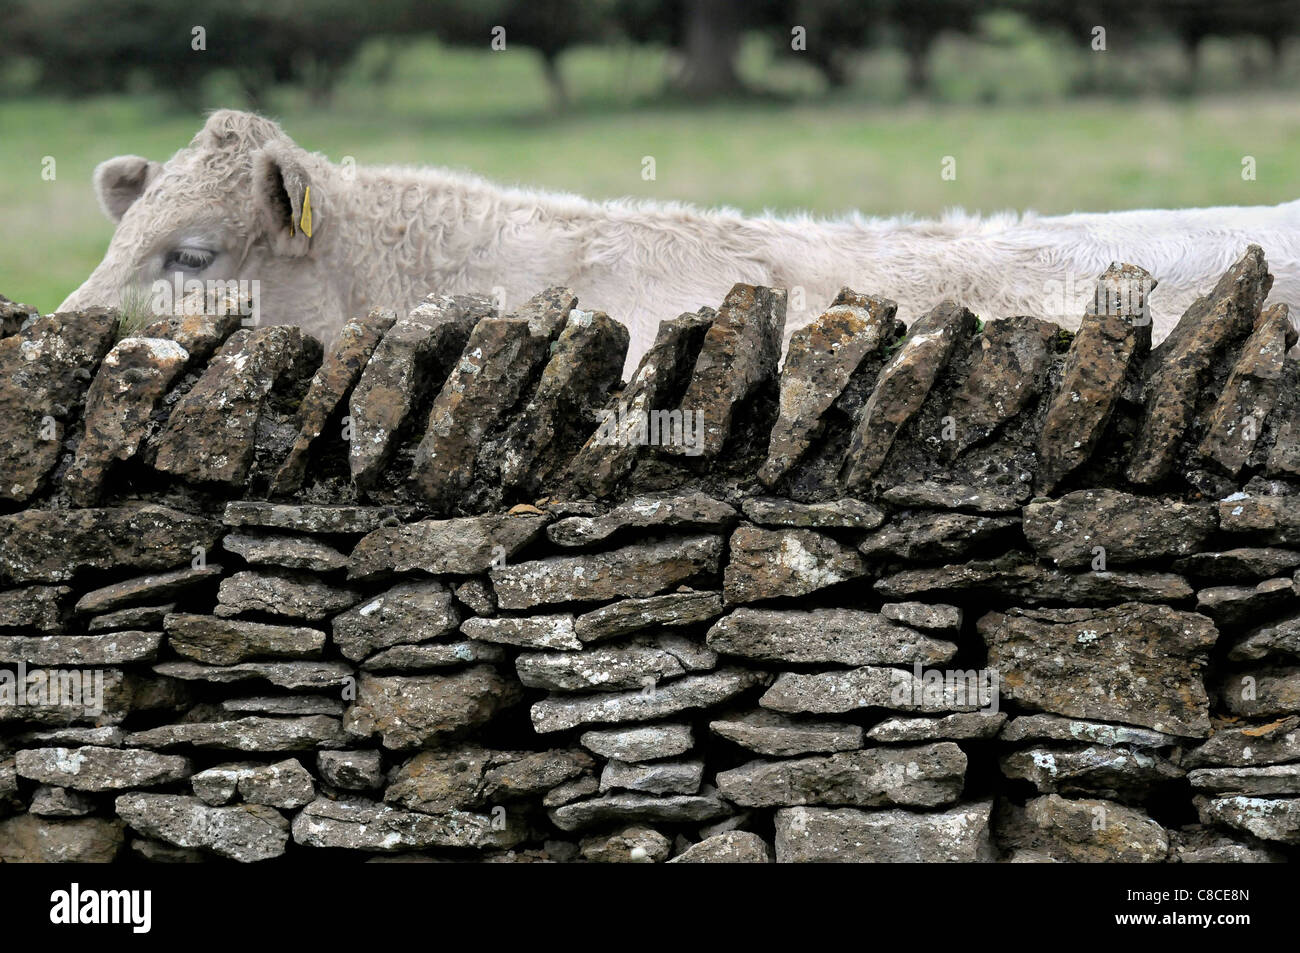 © Tony Bartholomew A cow peers over a stone wall in the village of Hutton Buscel near Scarborough - Stock Image